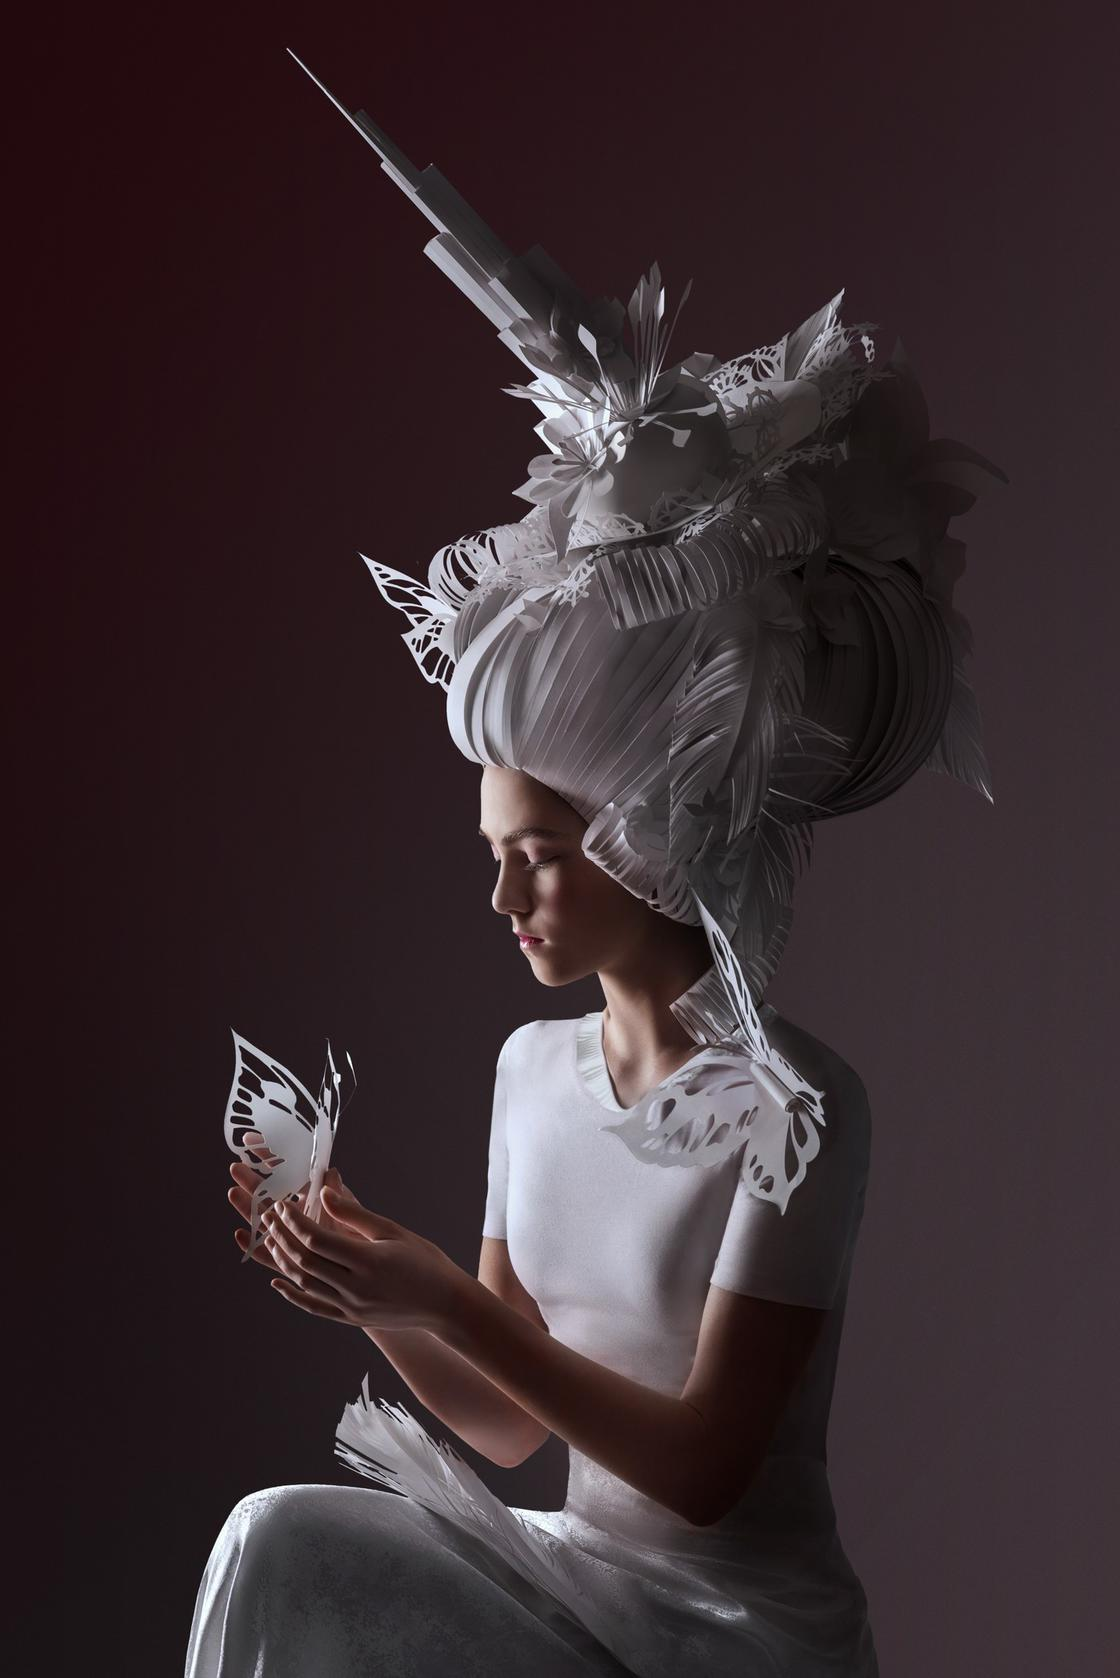 Fashion Paper – The latest paper creations by artist Asya Kozina